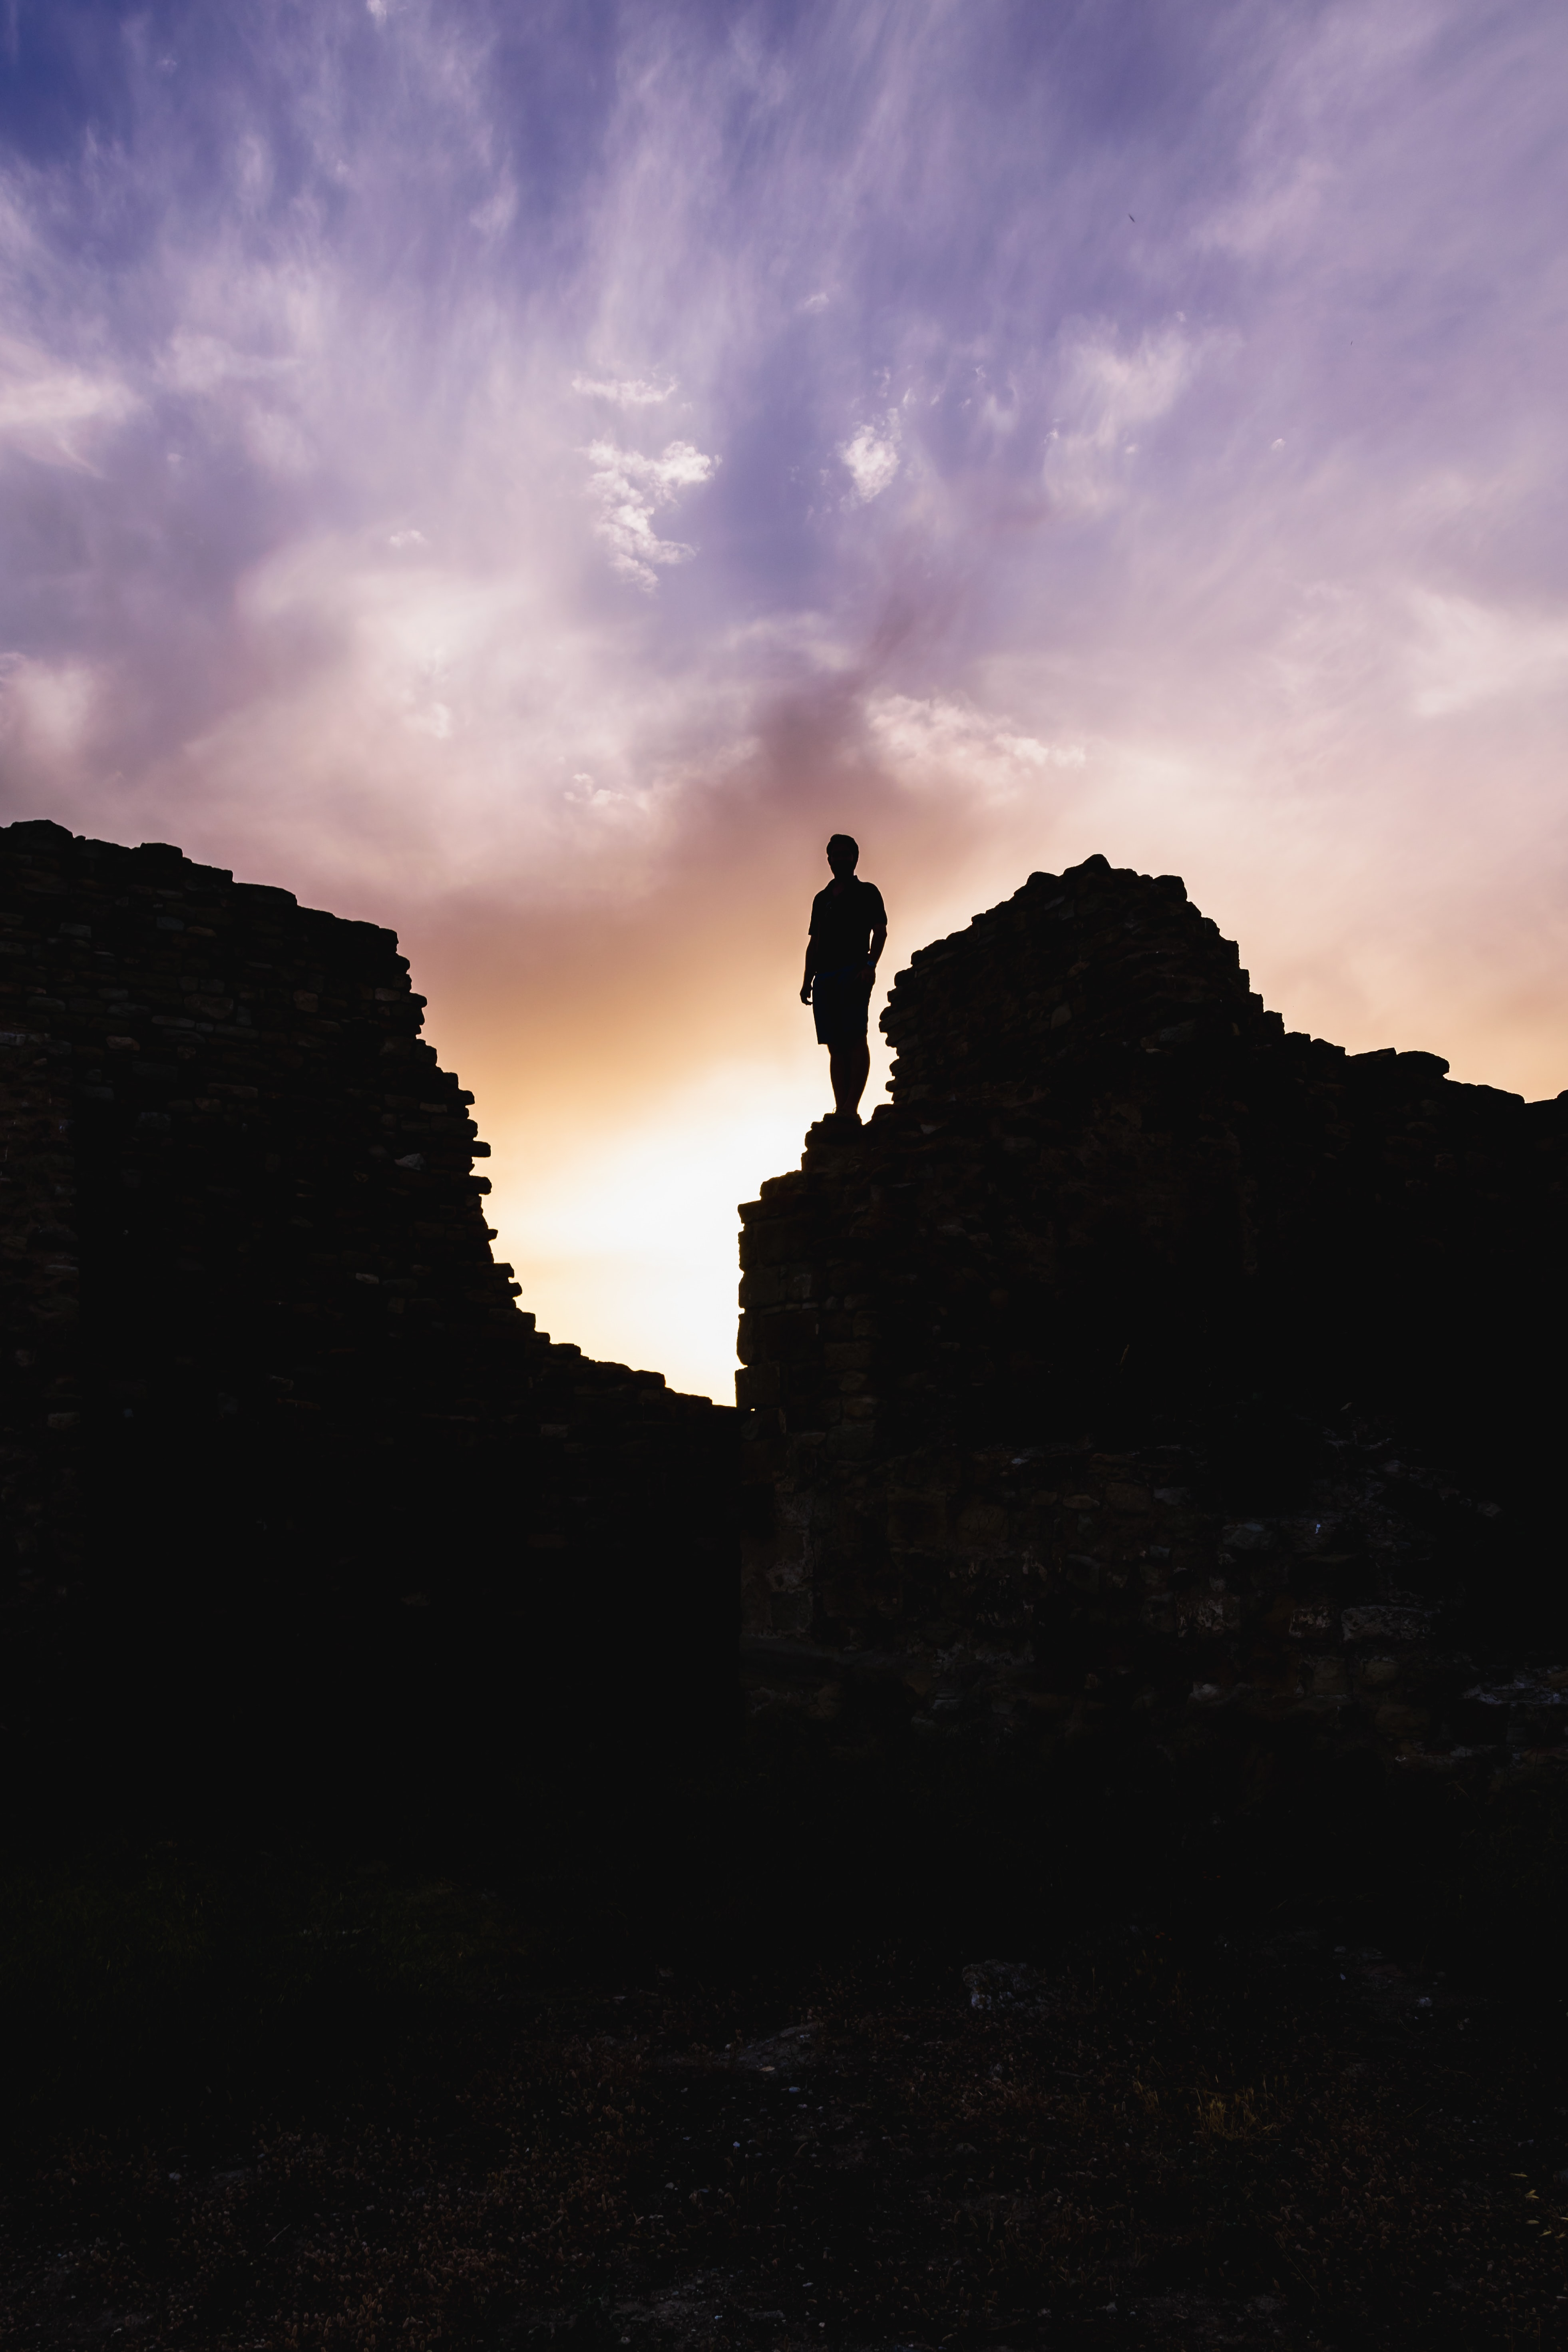 silhouette of man standing on rock formation